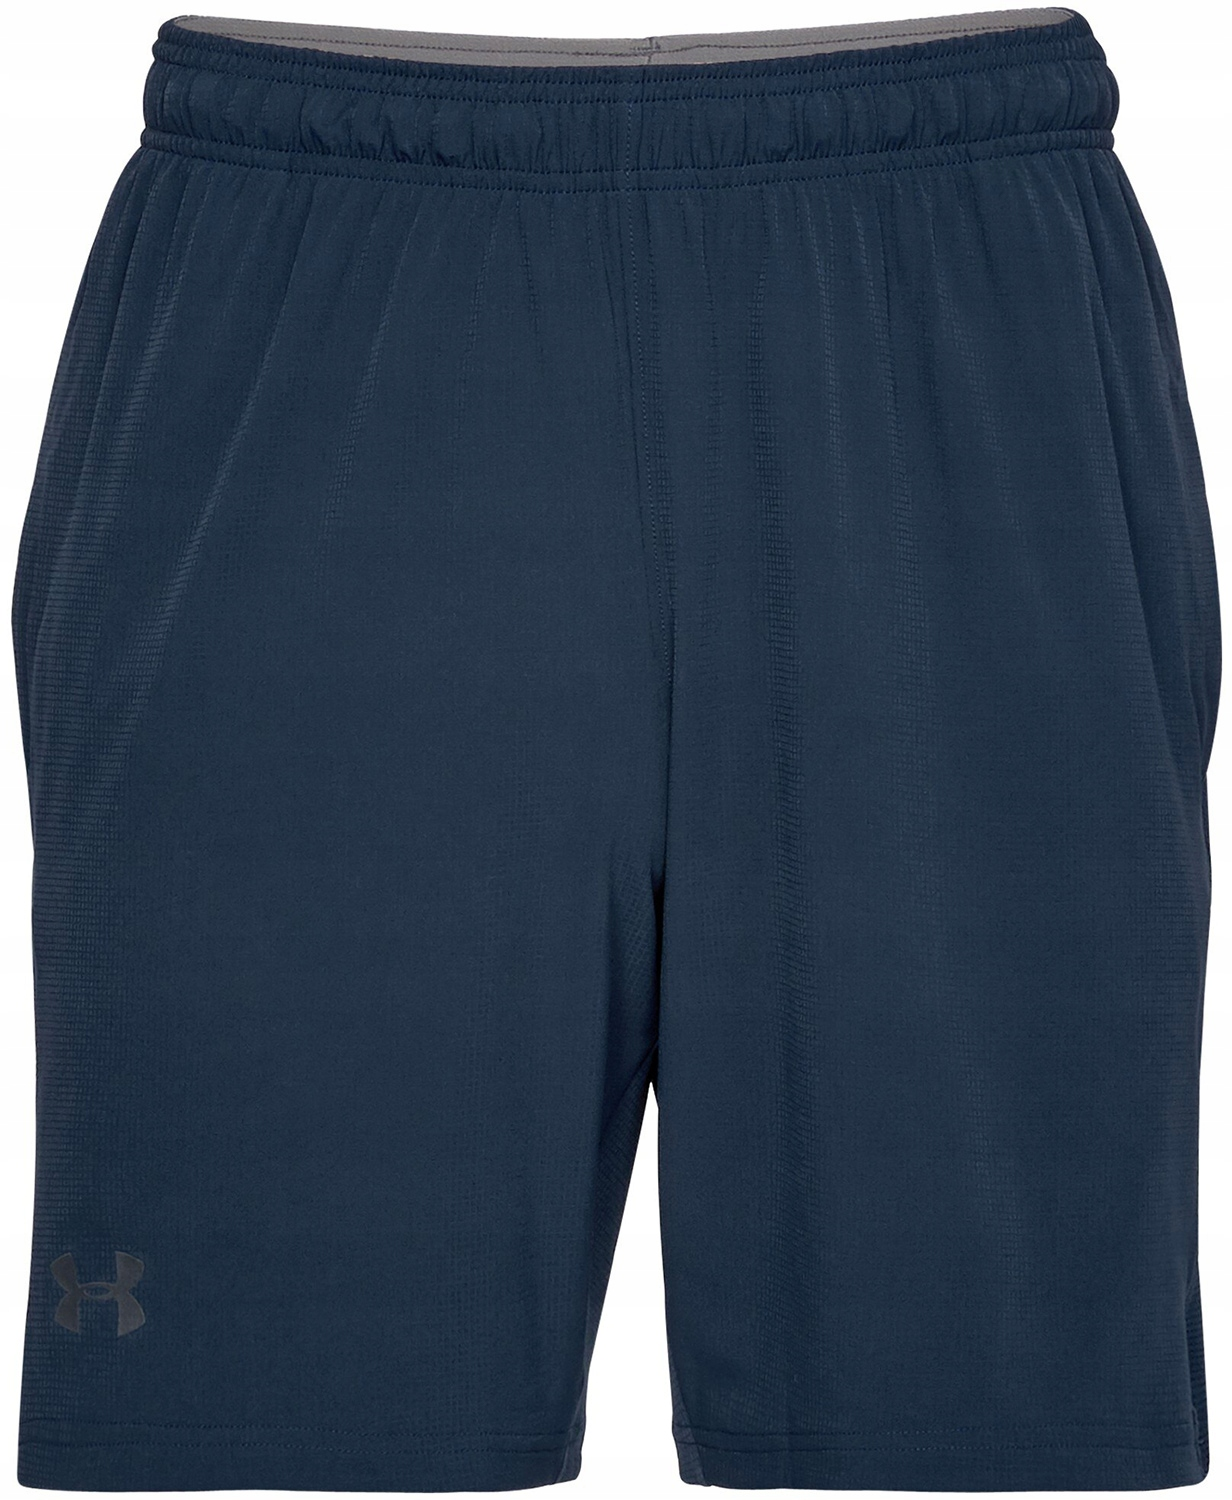 Under Armour UA Cage Short Navy # S (1304127-408)